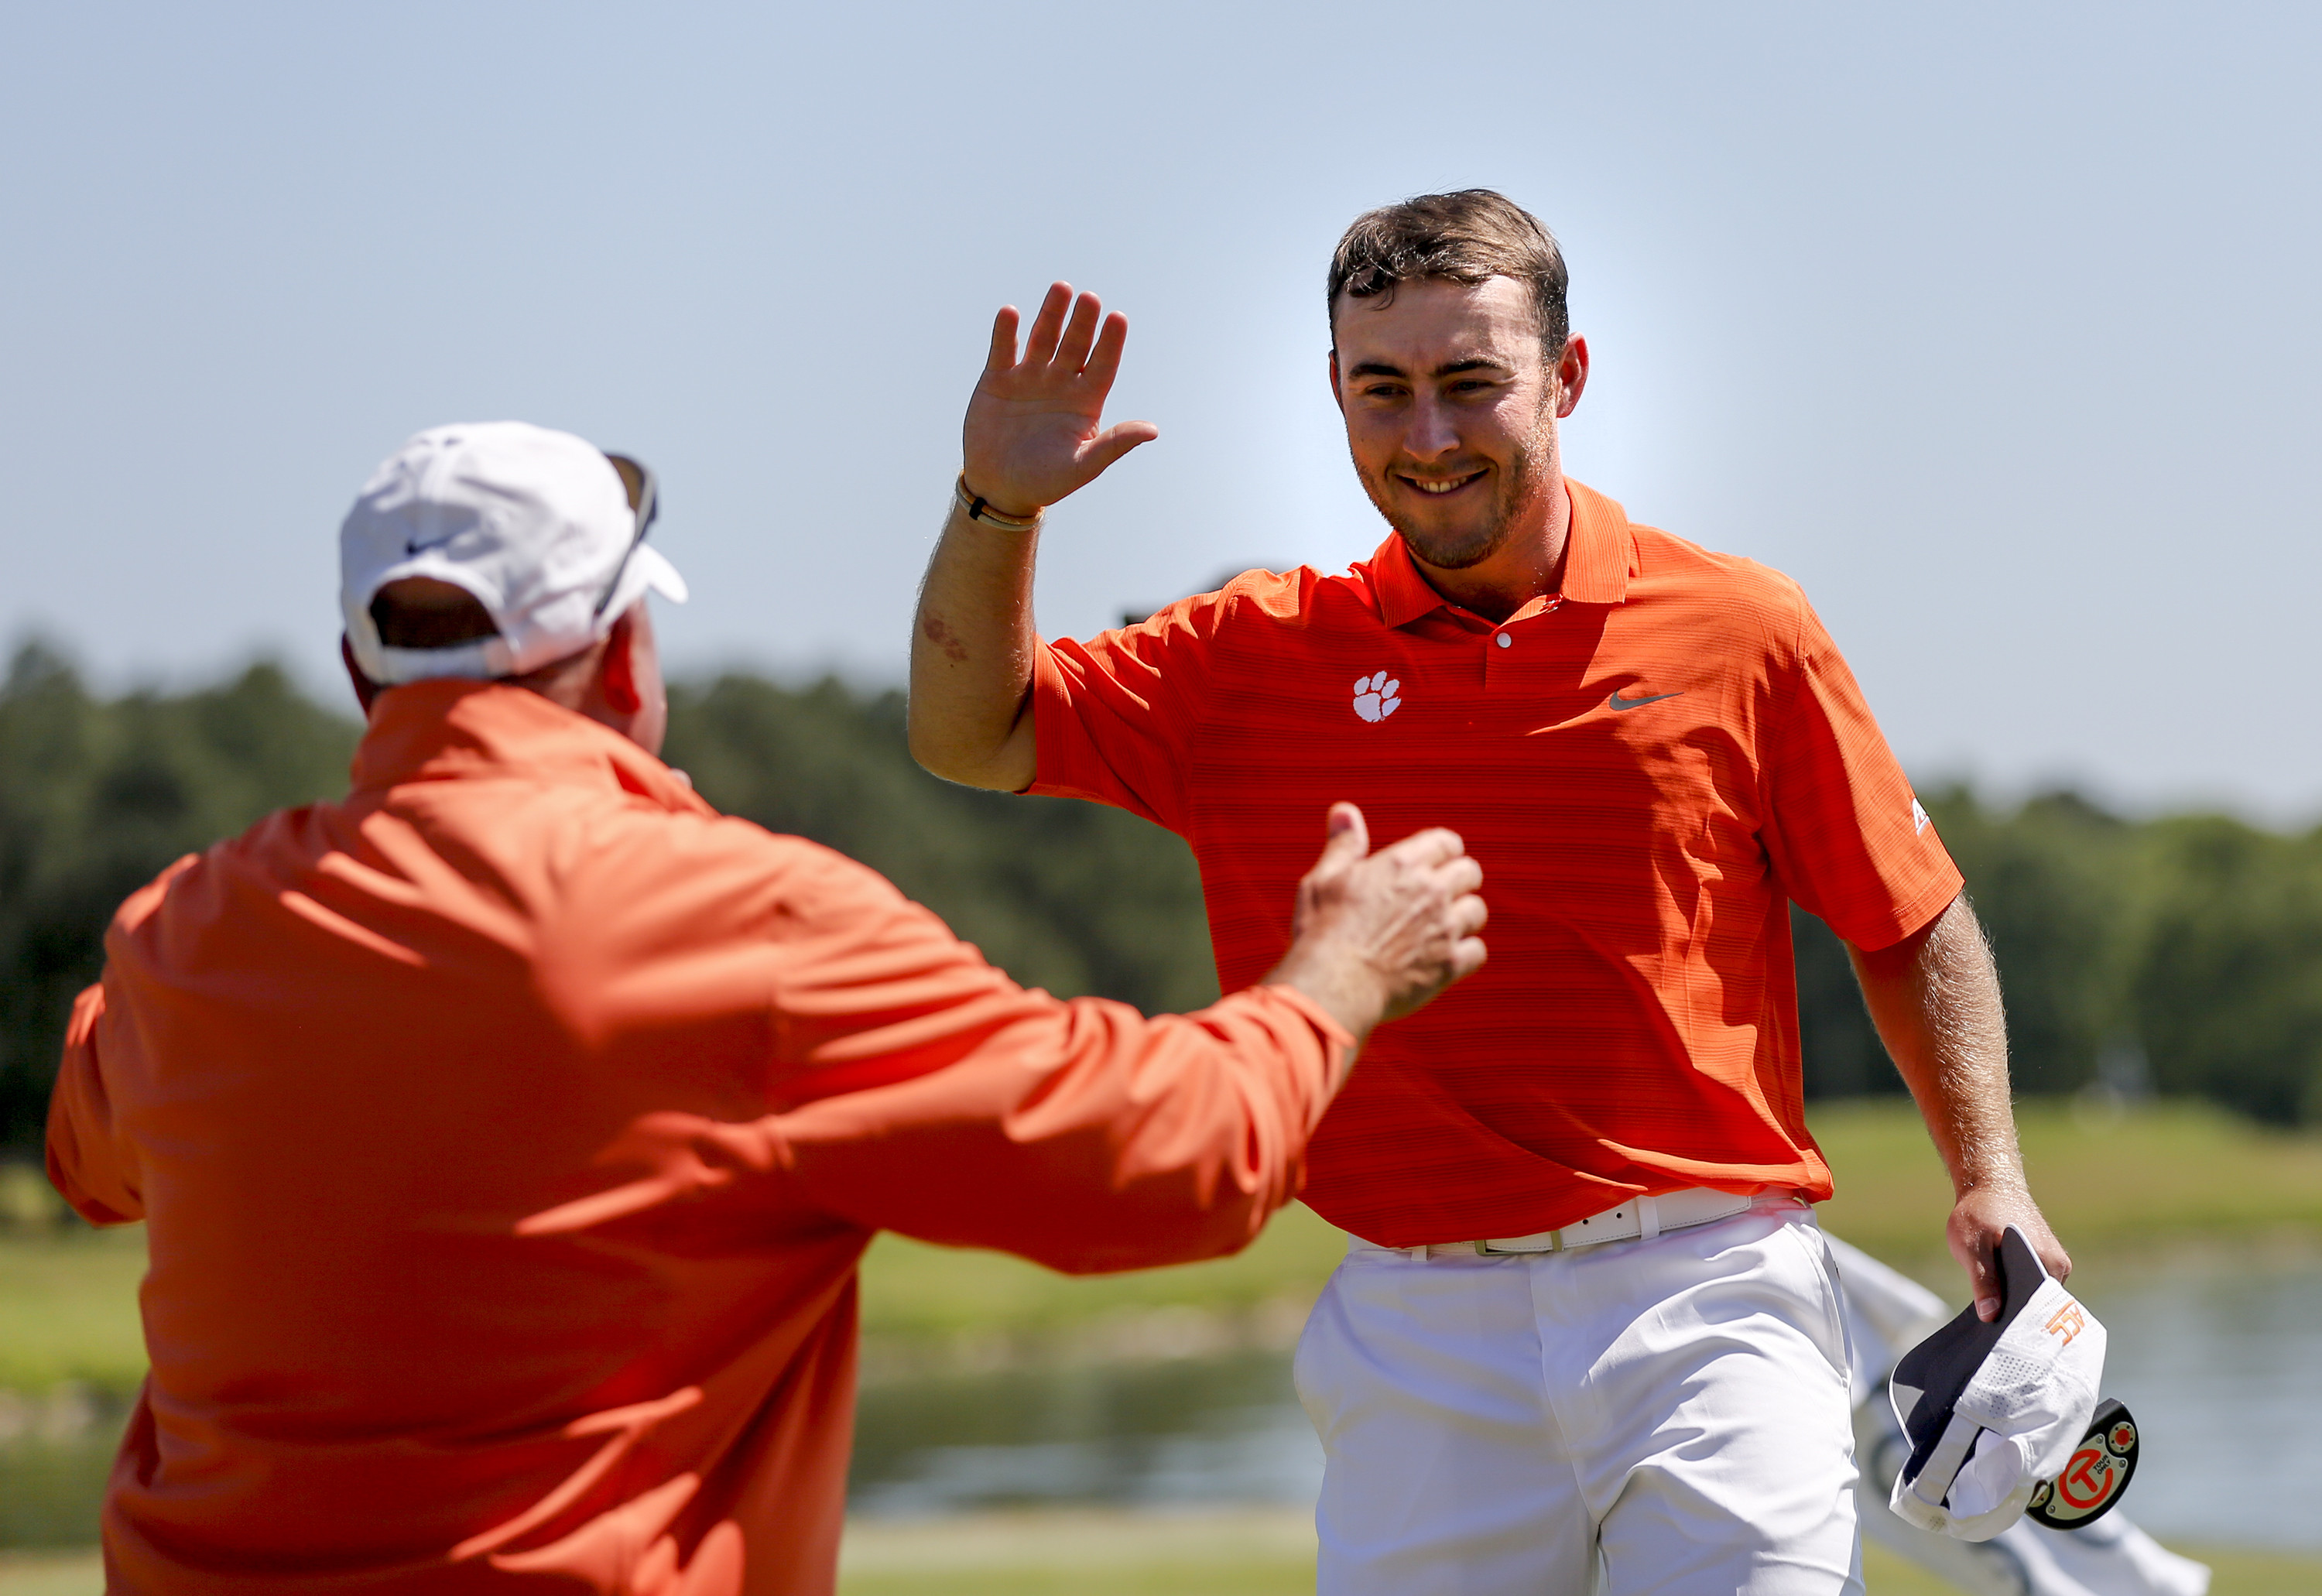 Clemson Improves to No. 14 in Latest Golf Coaches Poll